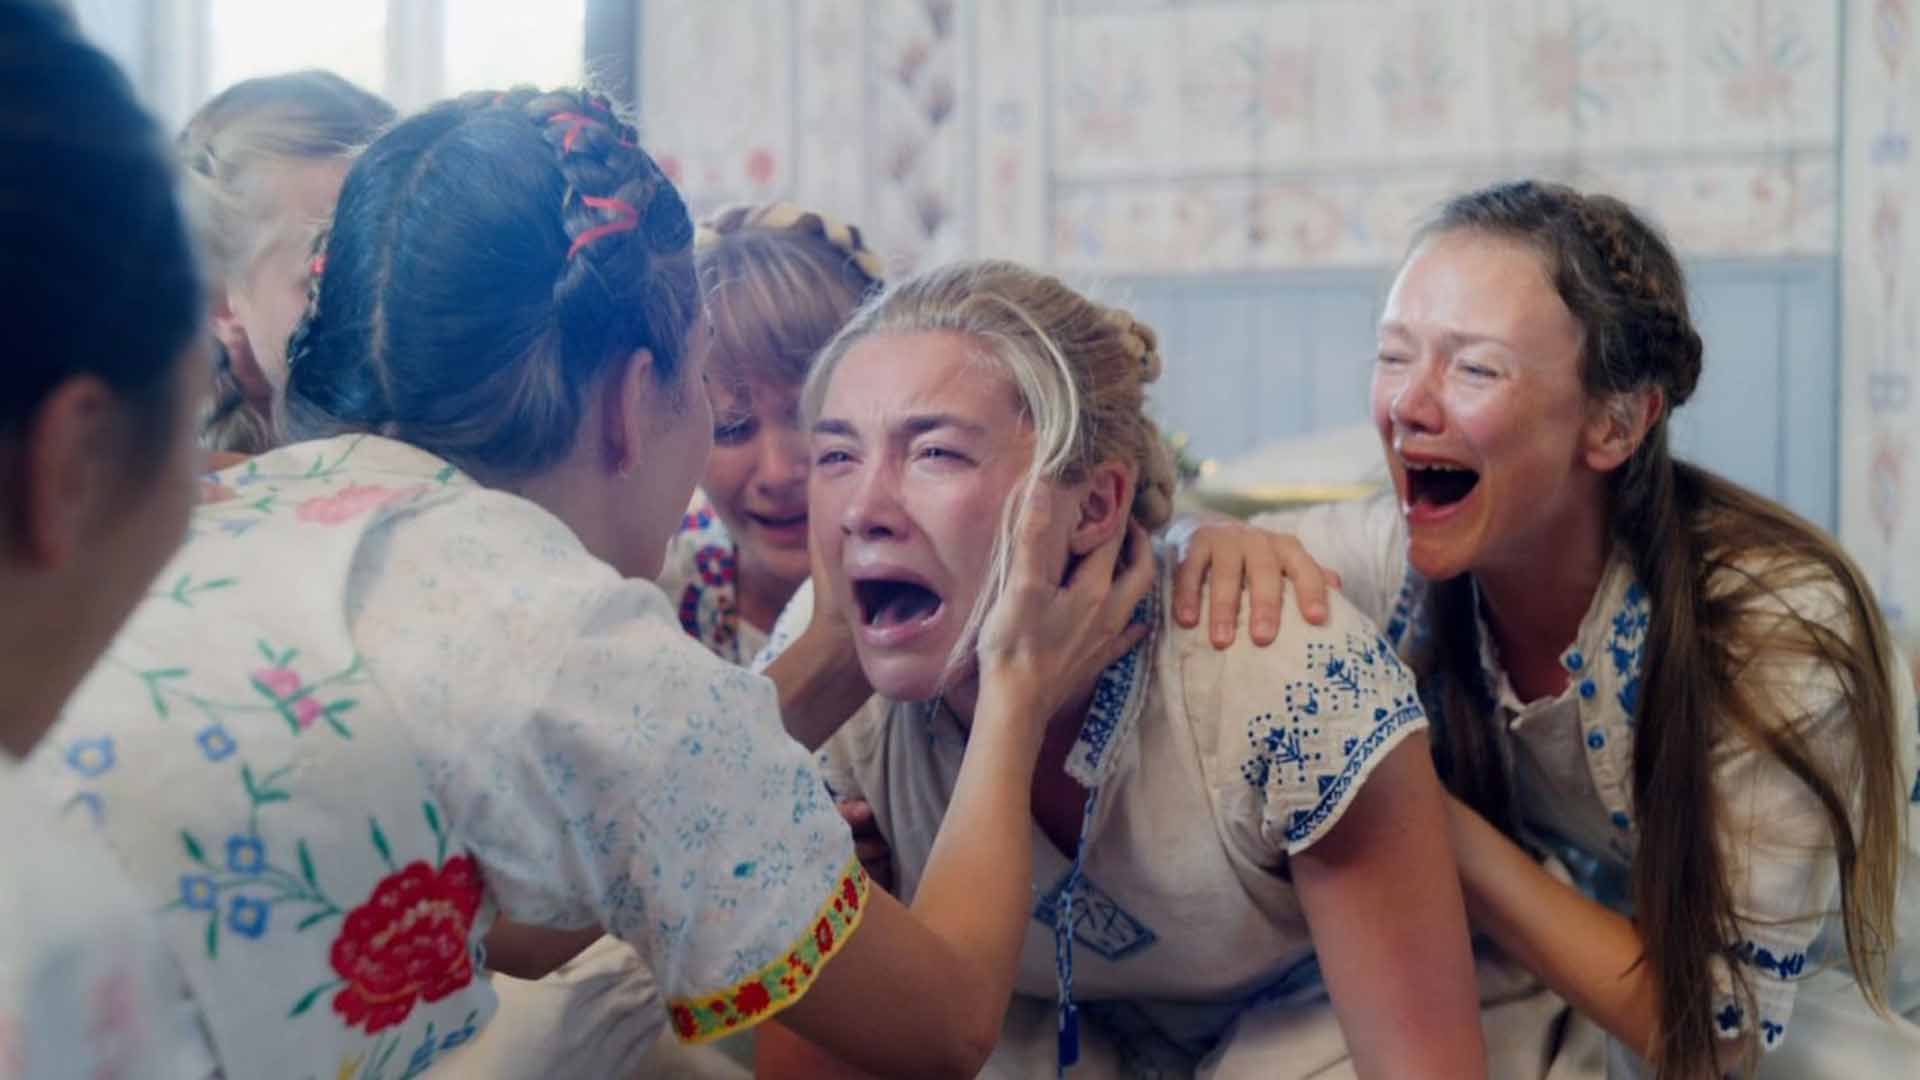 Florence Pew is crying with the other girls in the movie Midsommar